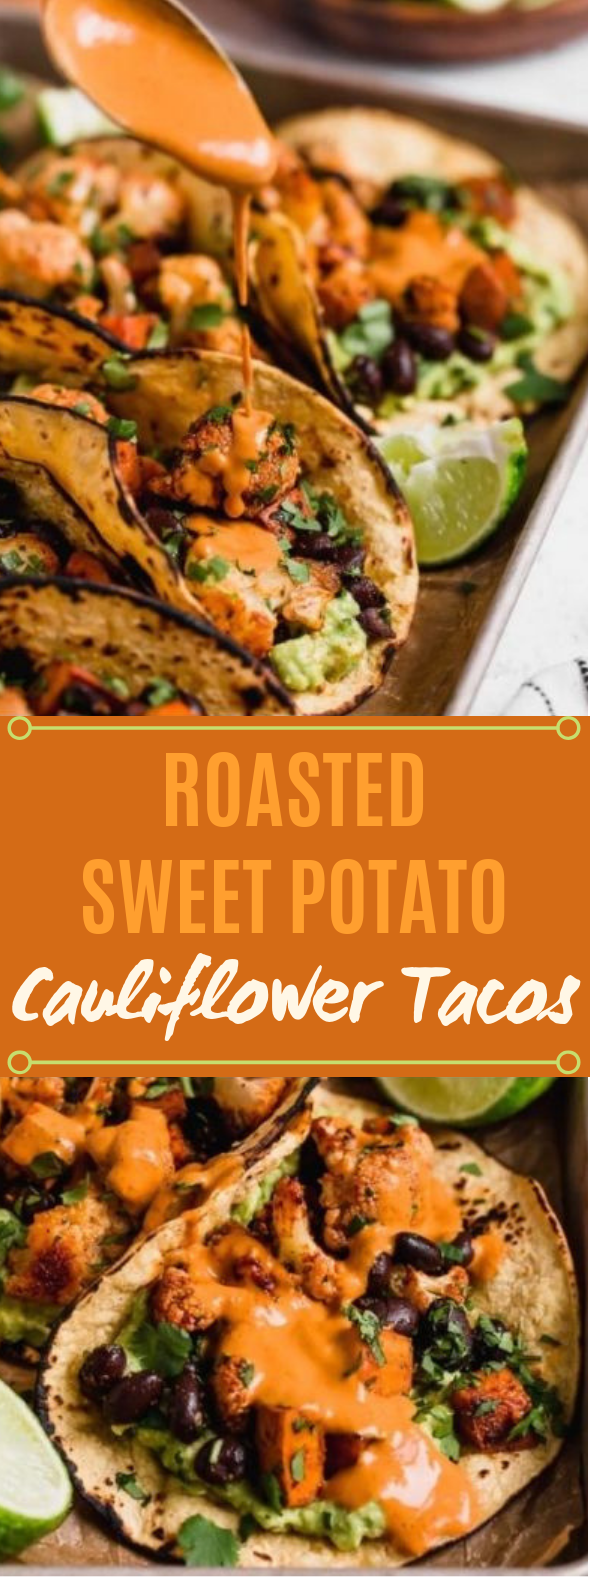 Roasted sweet potato & cauliflower tacos #vegetarian #lunch